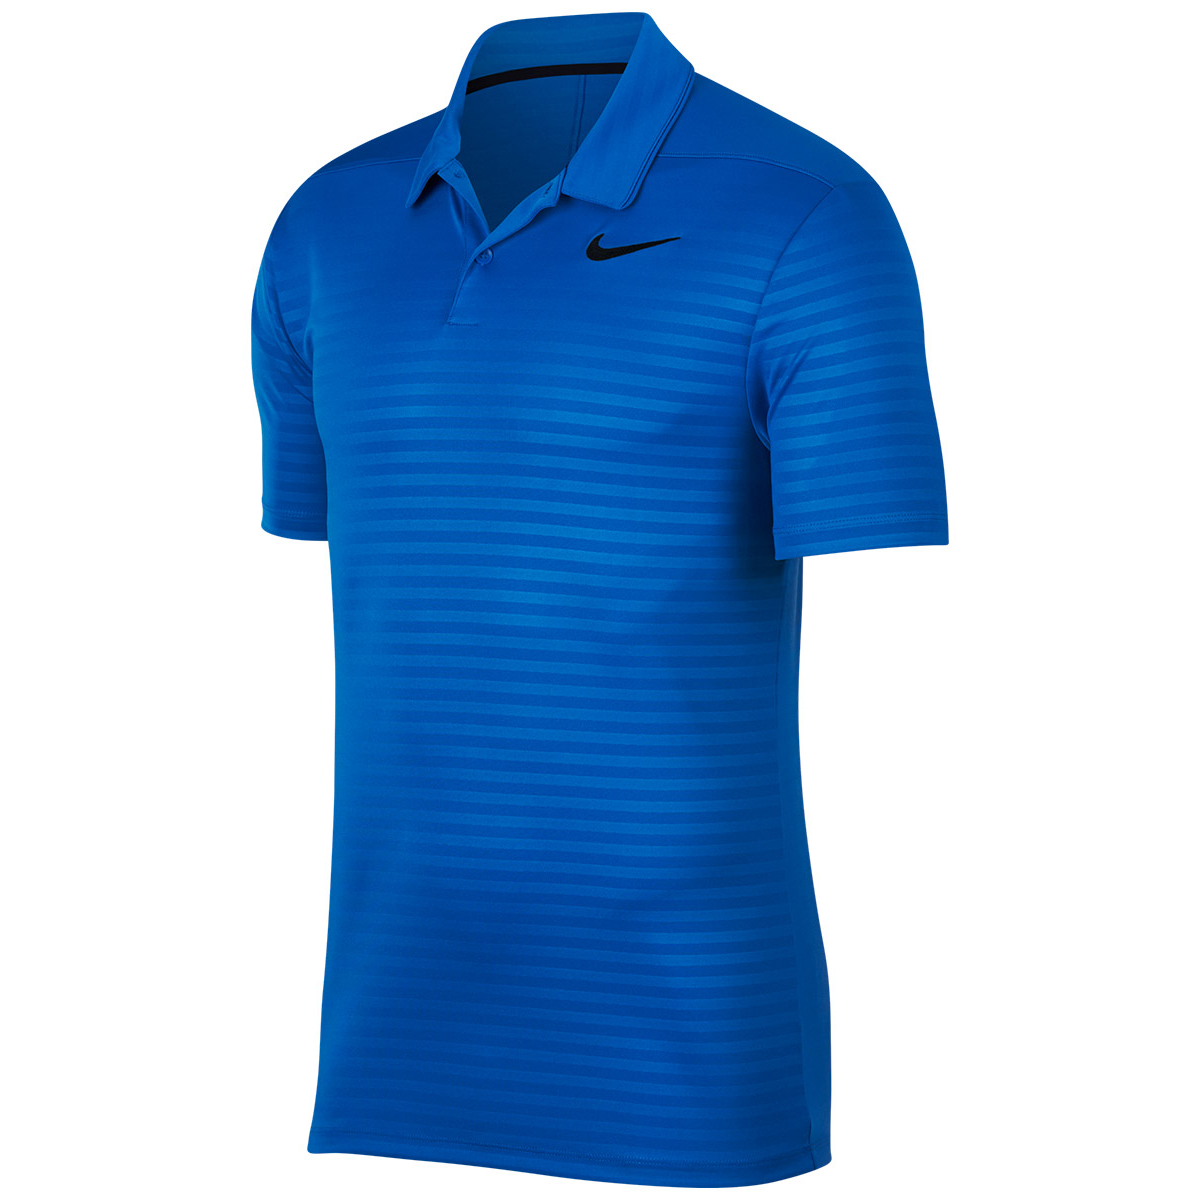 Nike Golf Dry Embossed Stripe Polo Shirt from american golf